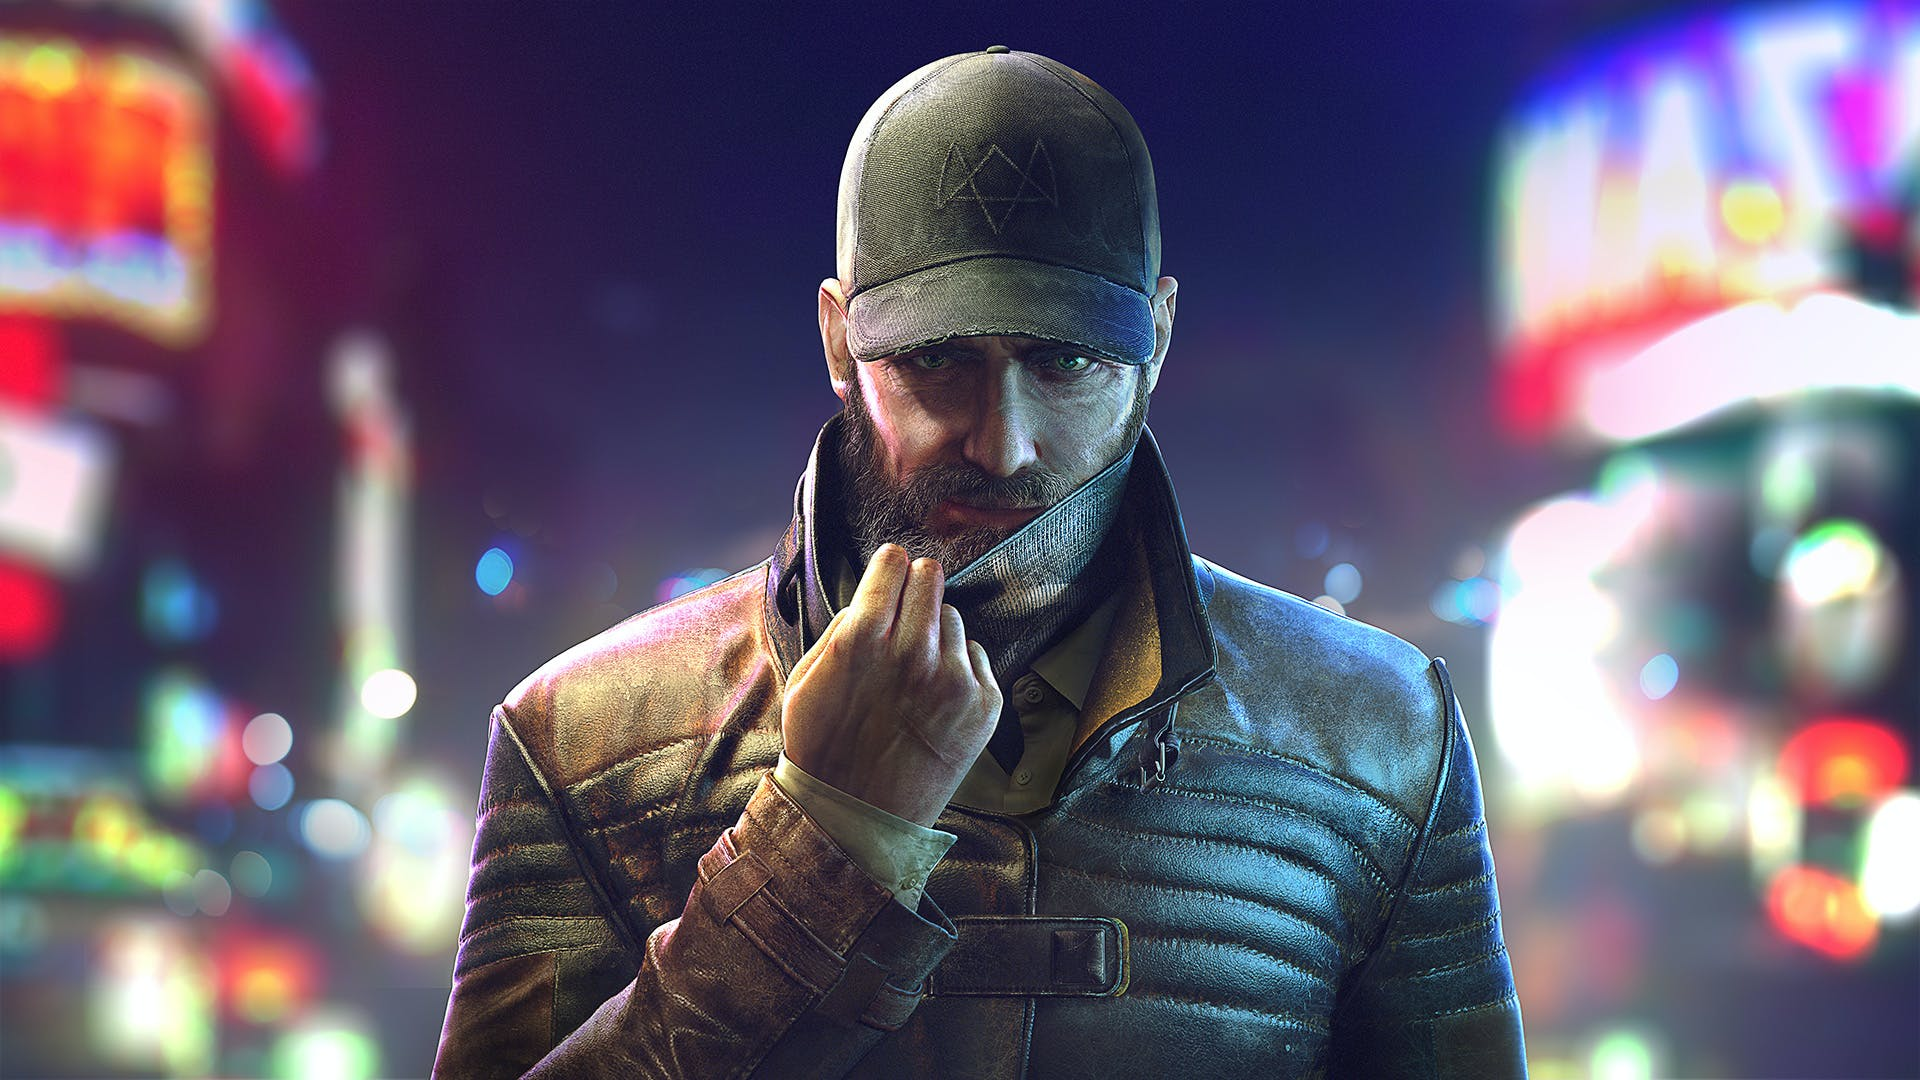 watch dogs legion - generacion xbox